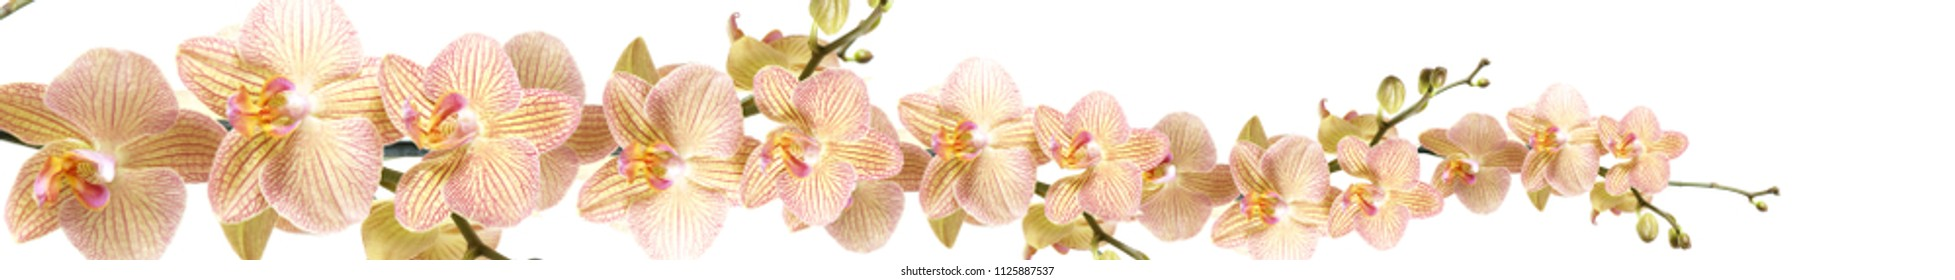 Orange striped tender orchids on a white background.